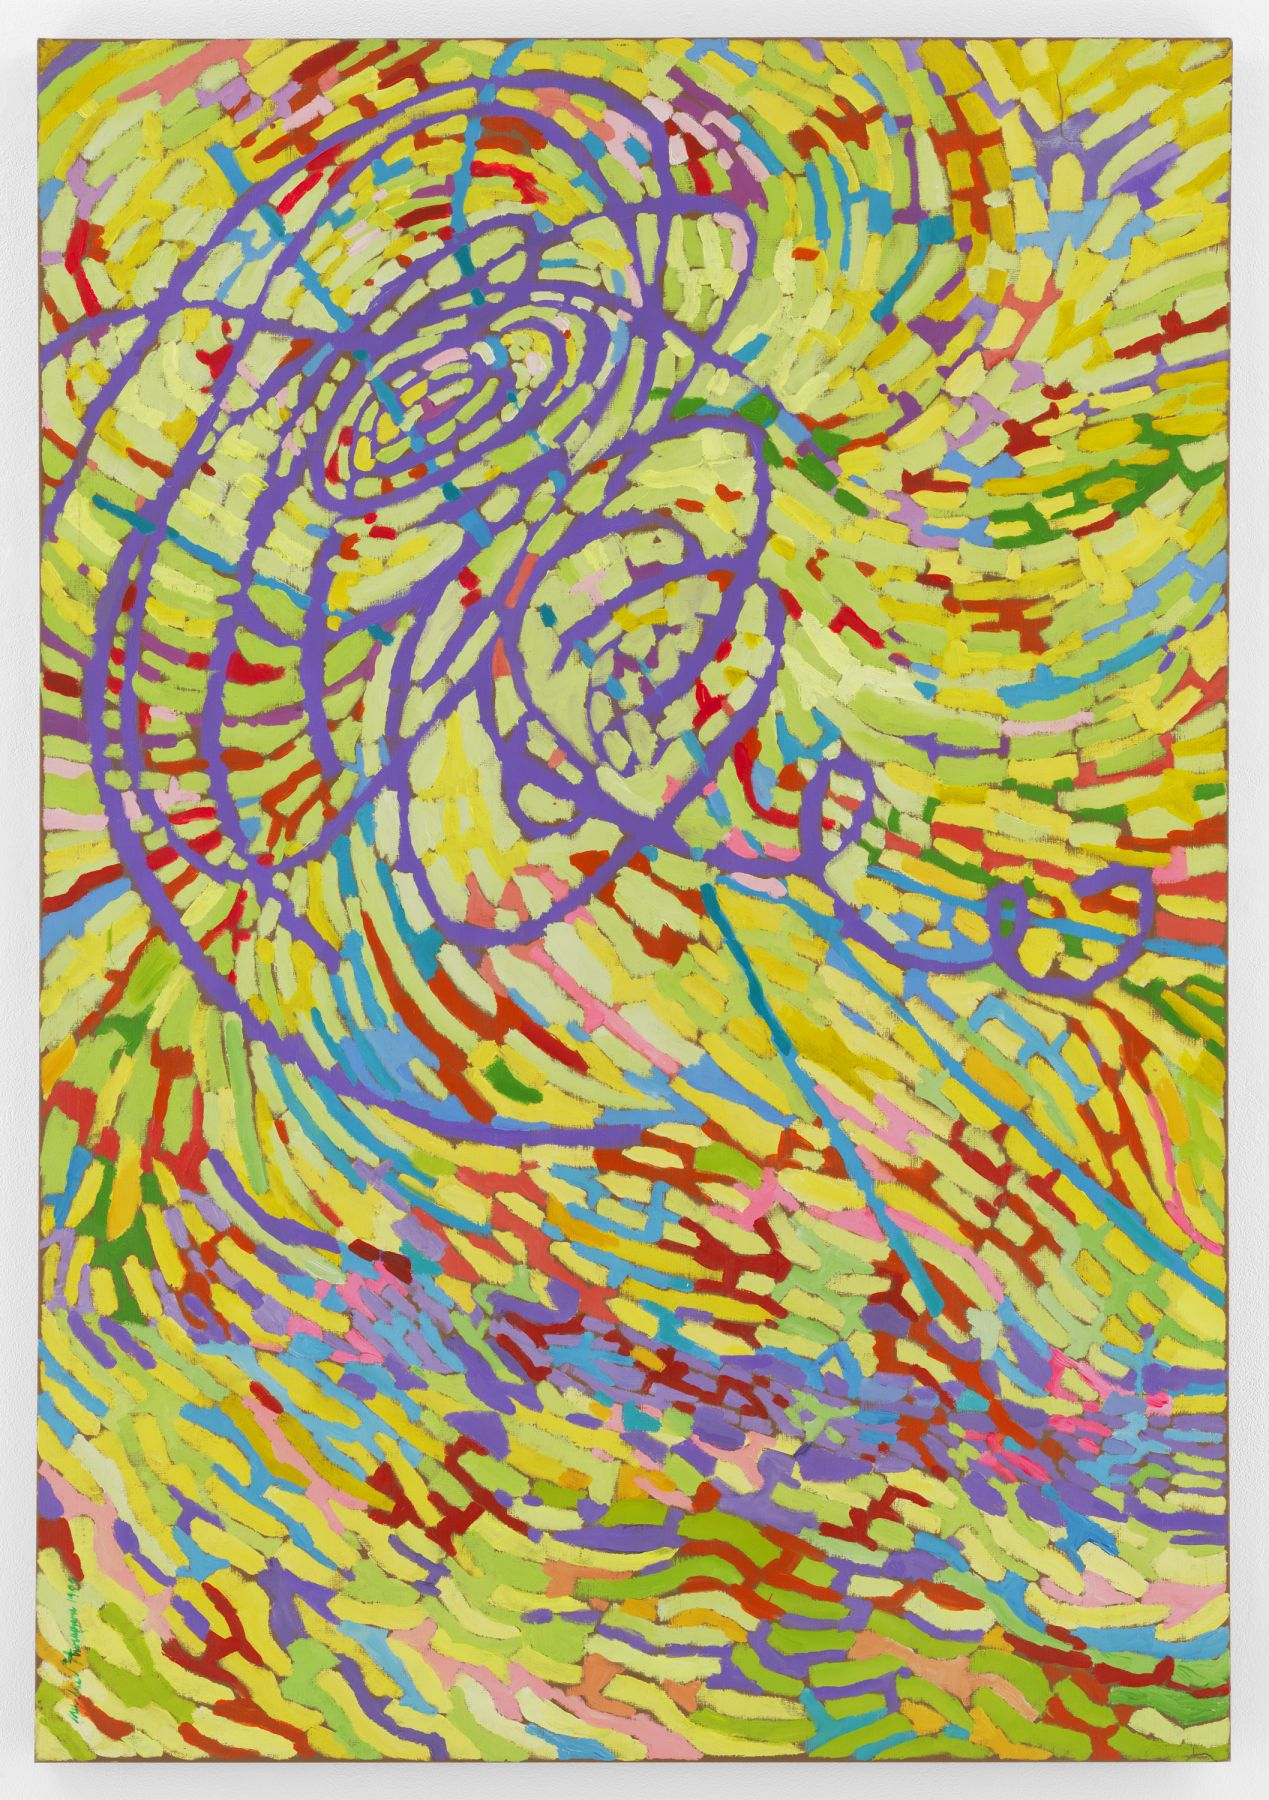 Mildred Thompson, String Theory 4, 1999